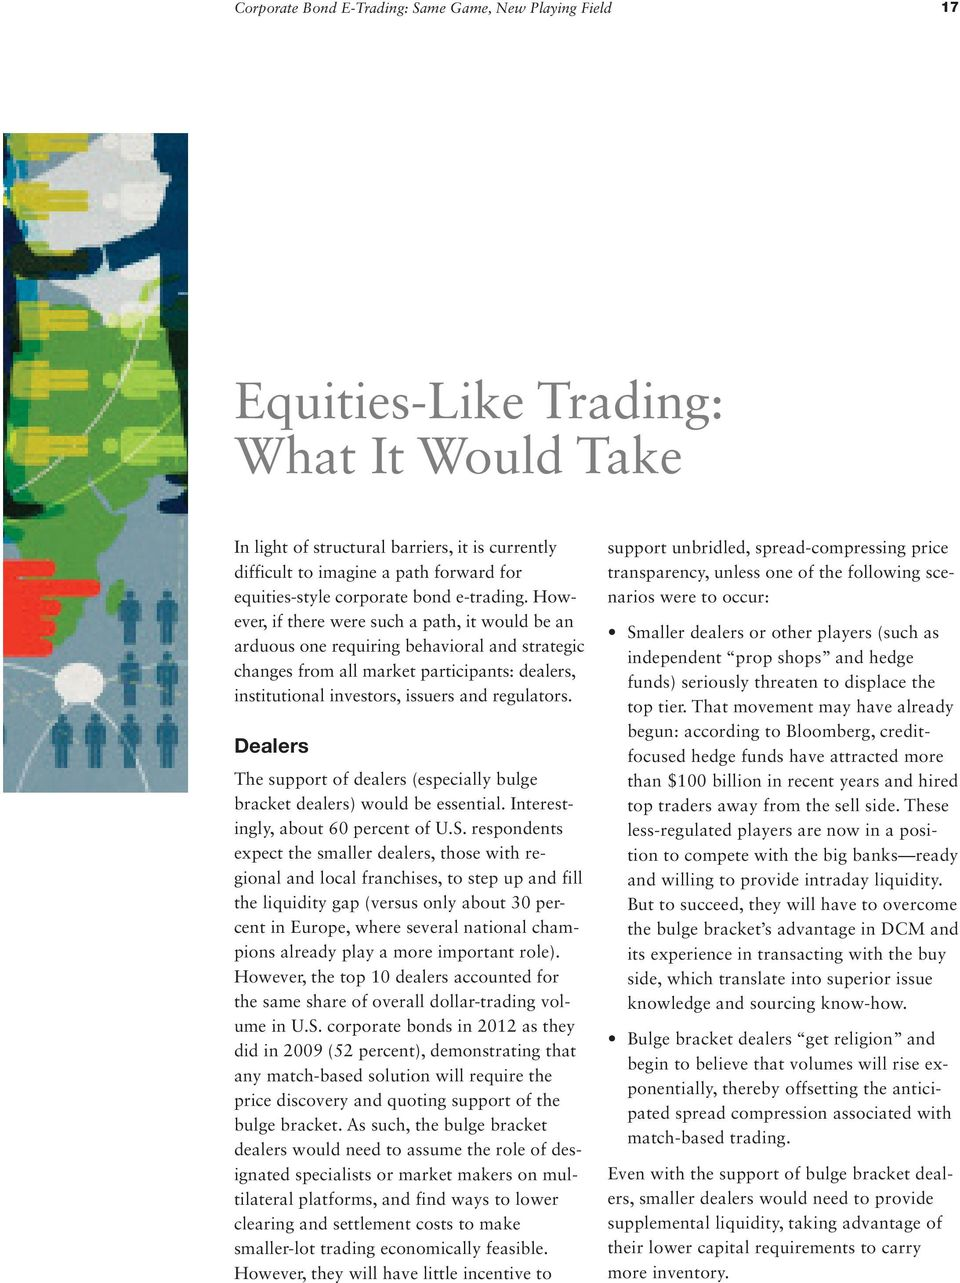 However, if there were such a path, it would be an arduous one requiring behavioral and strategic changes from all market participants: dealers, institutional investors, issuers and regulators.